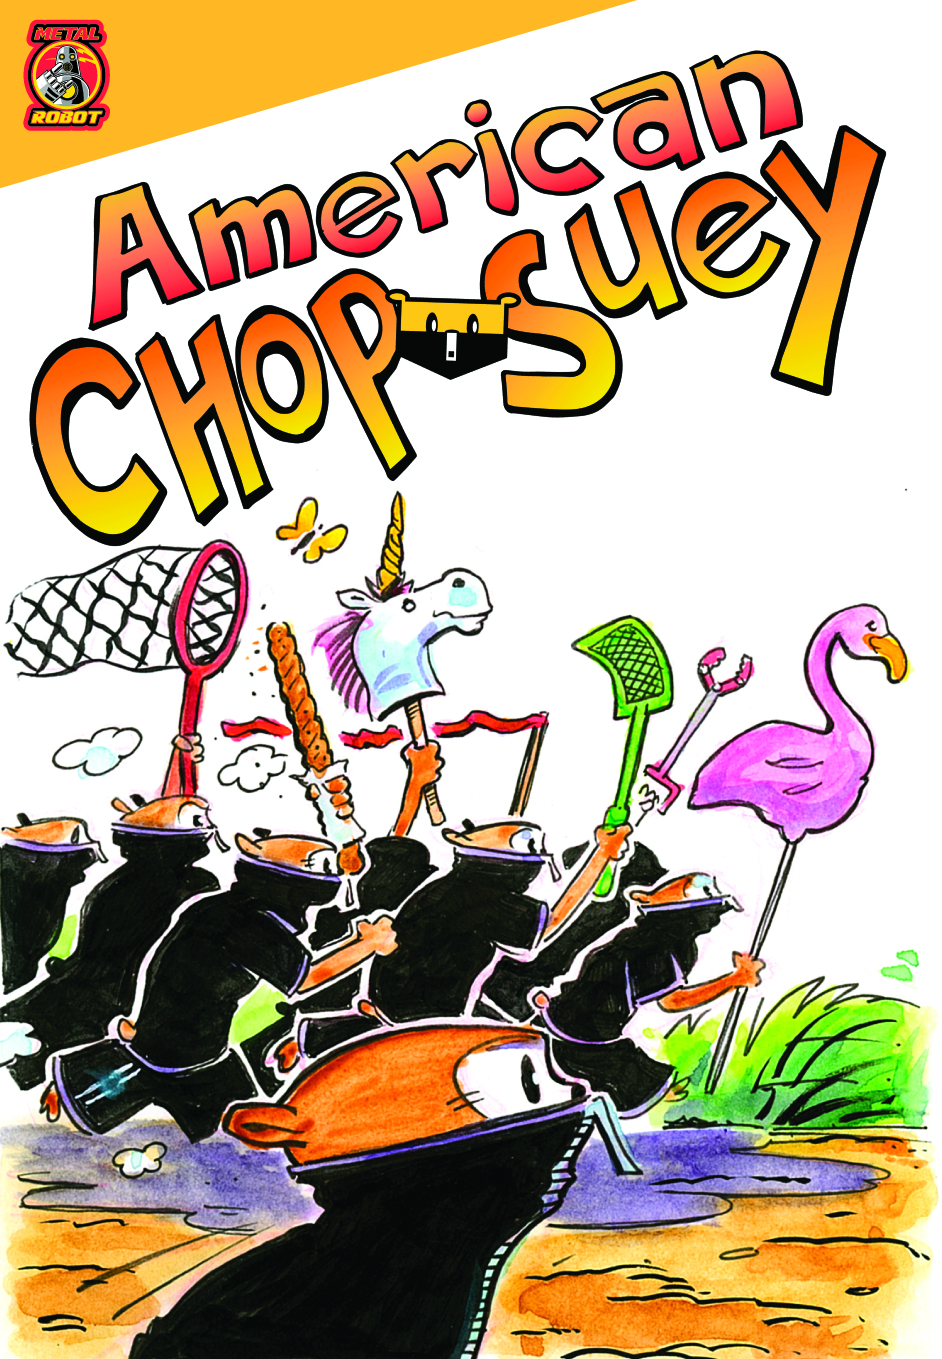 Read American Chop Suey from Metal Robot free on Graphite.